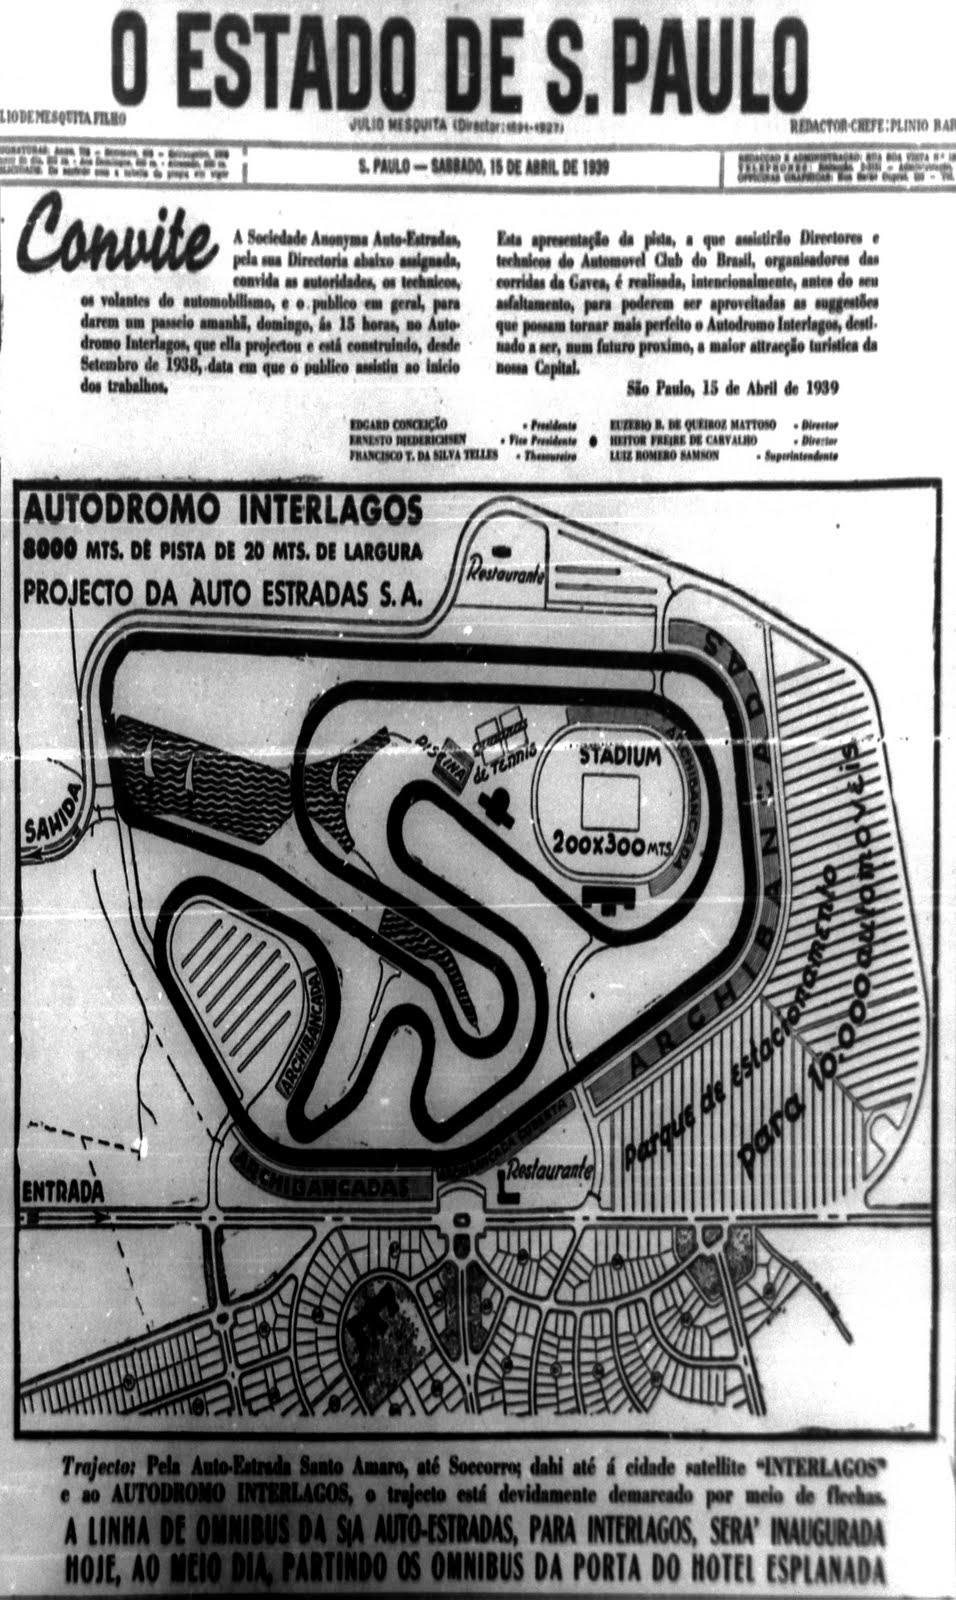 capa_estado_interlagos